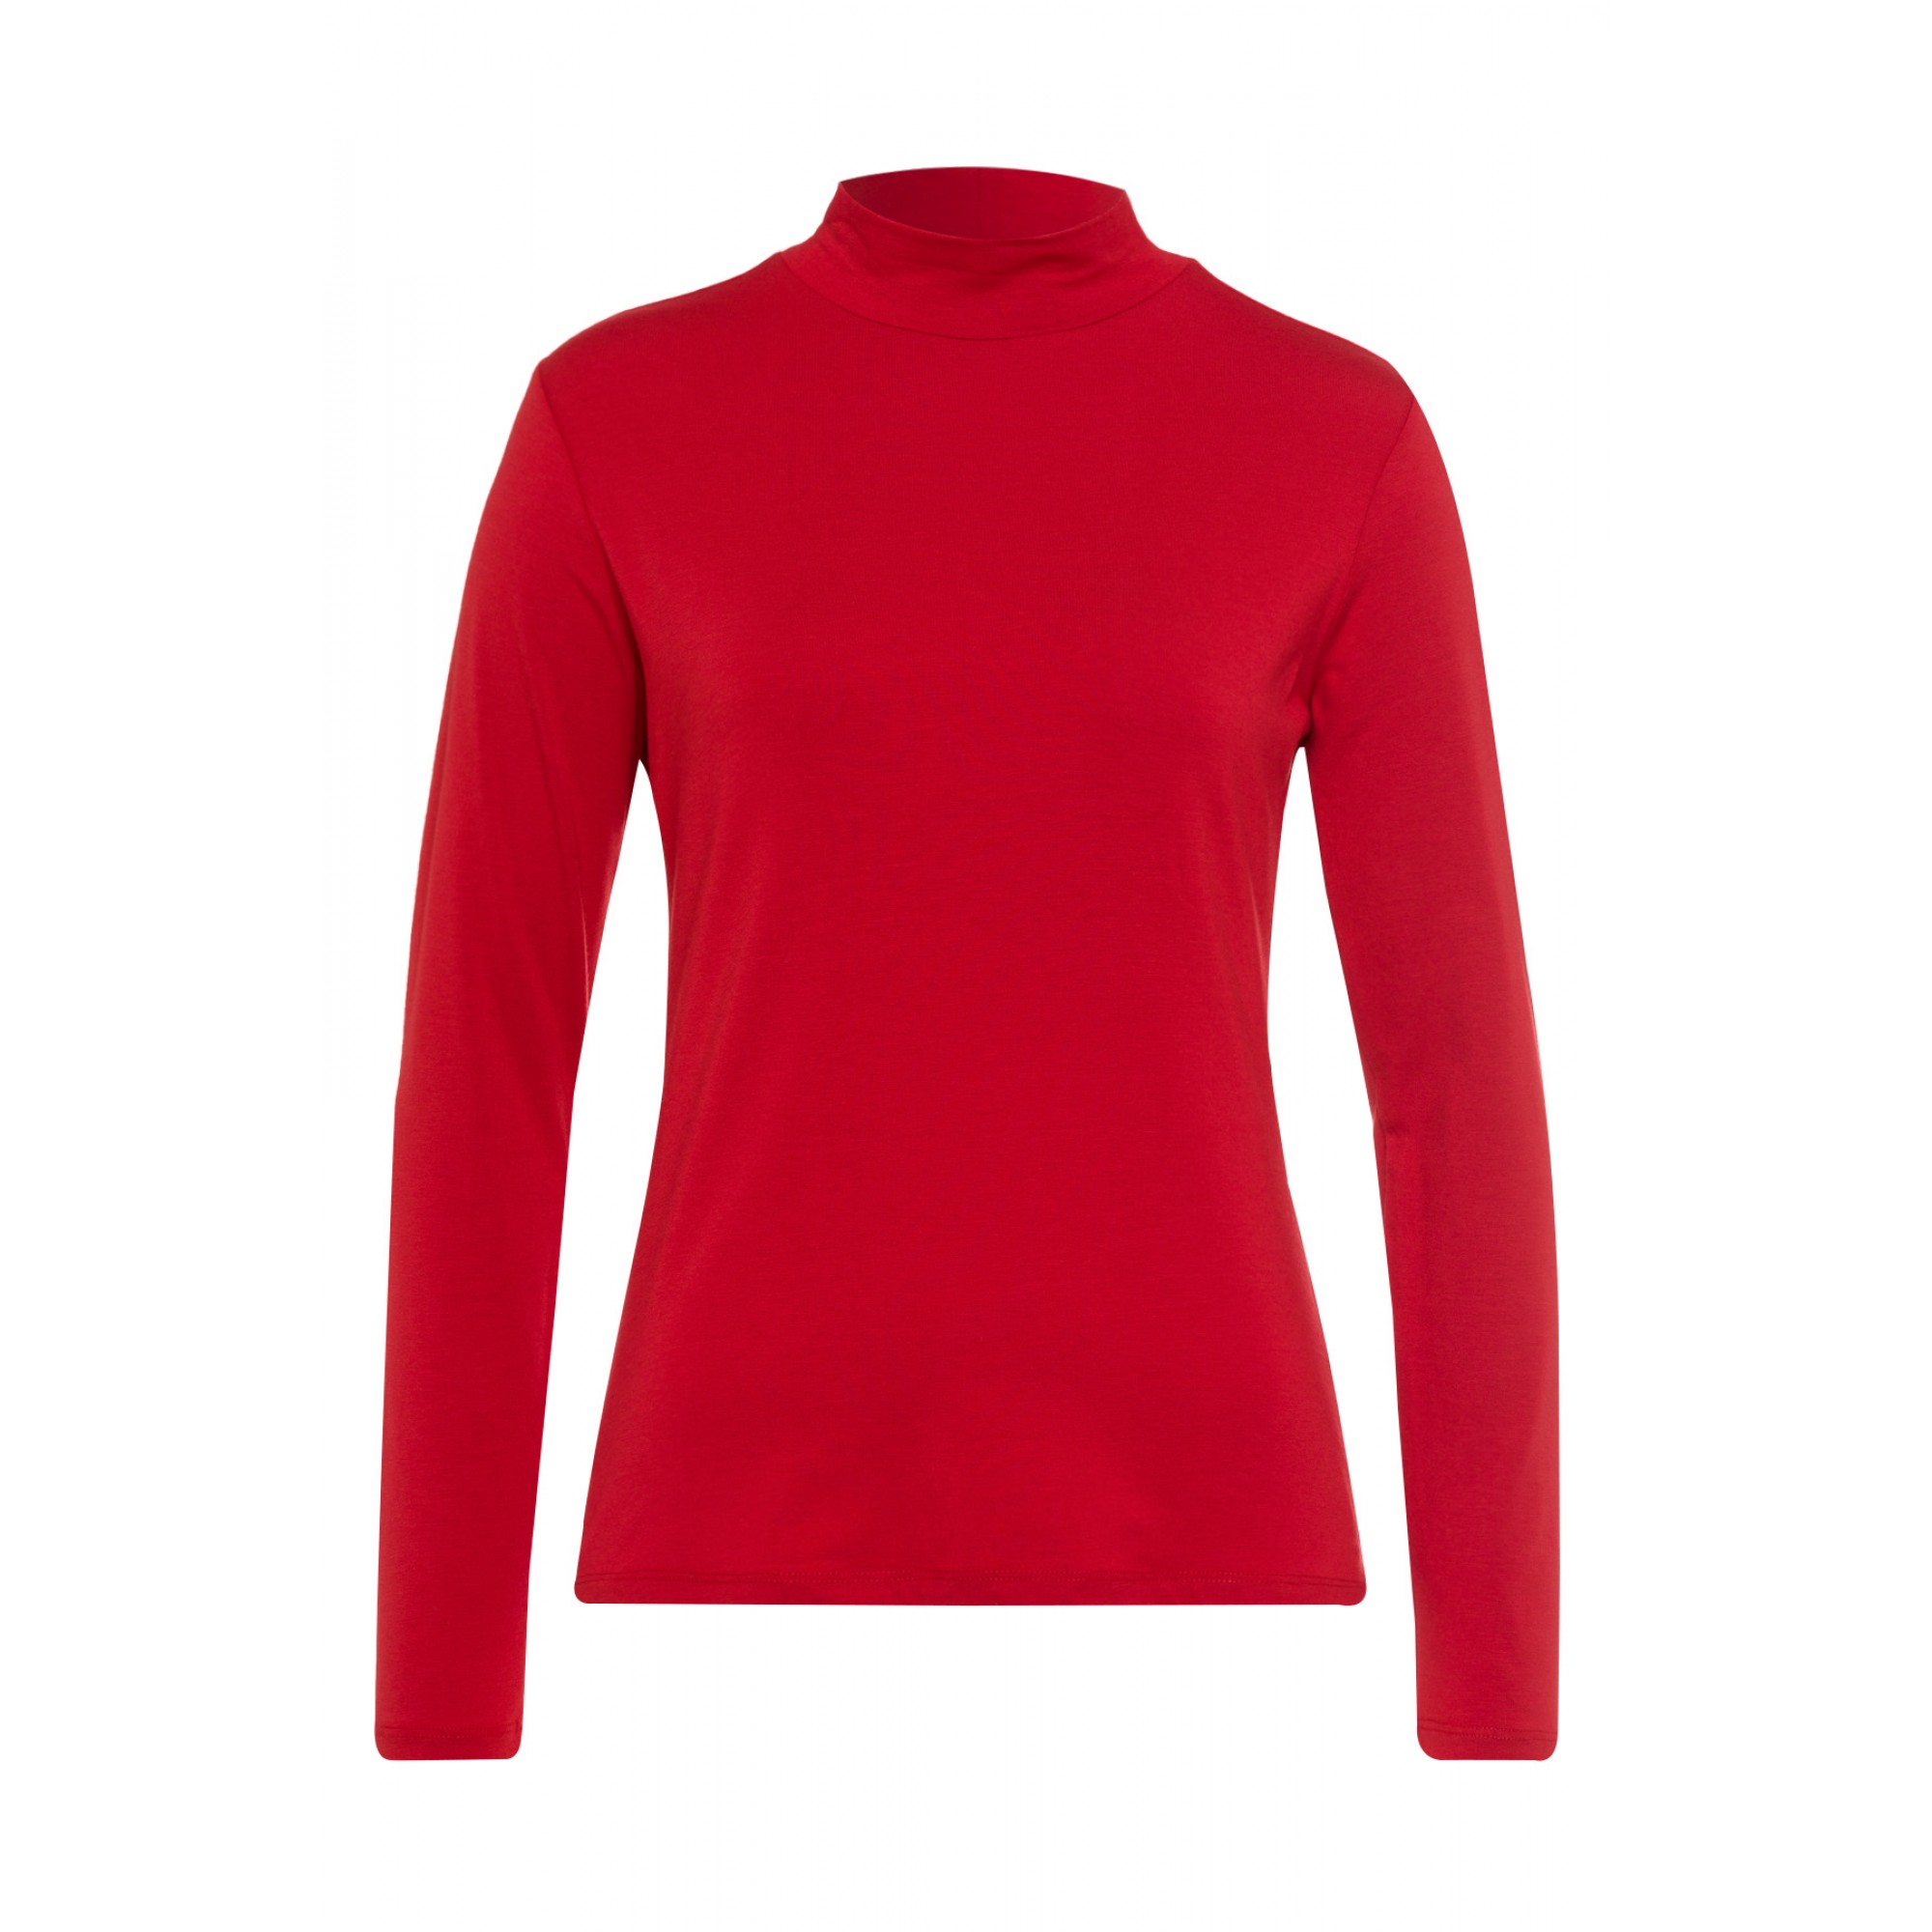 T-Shirt, Turtleneck, autumn red 01100002-0545 1